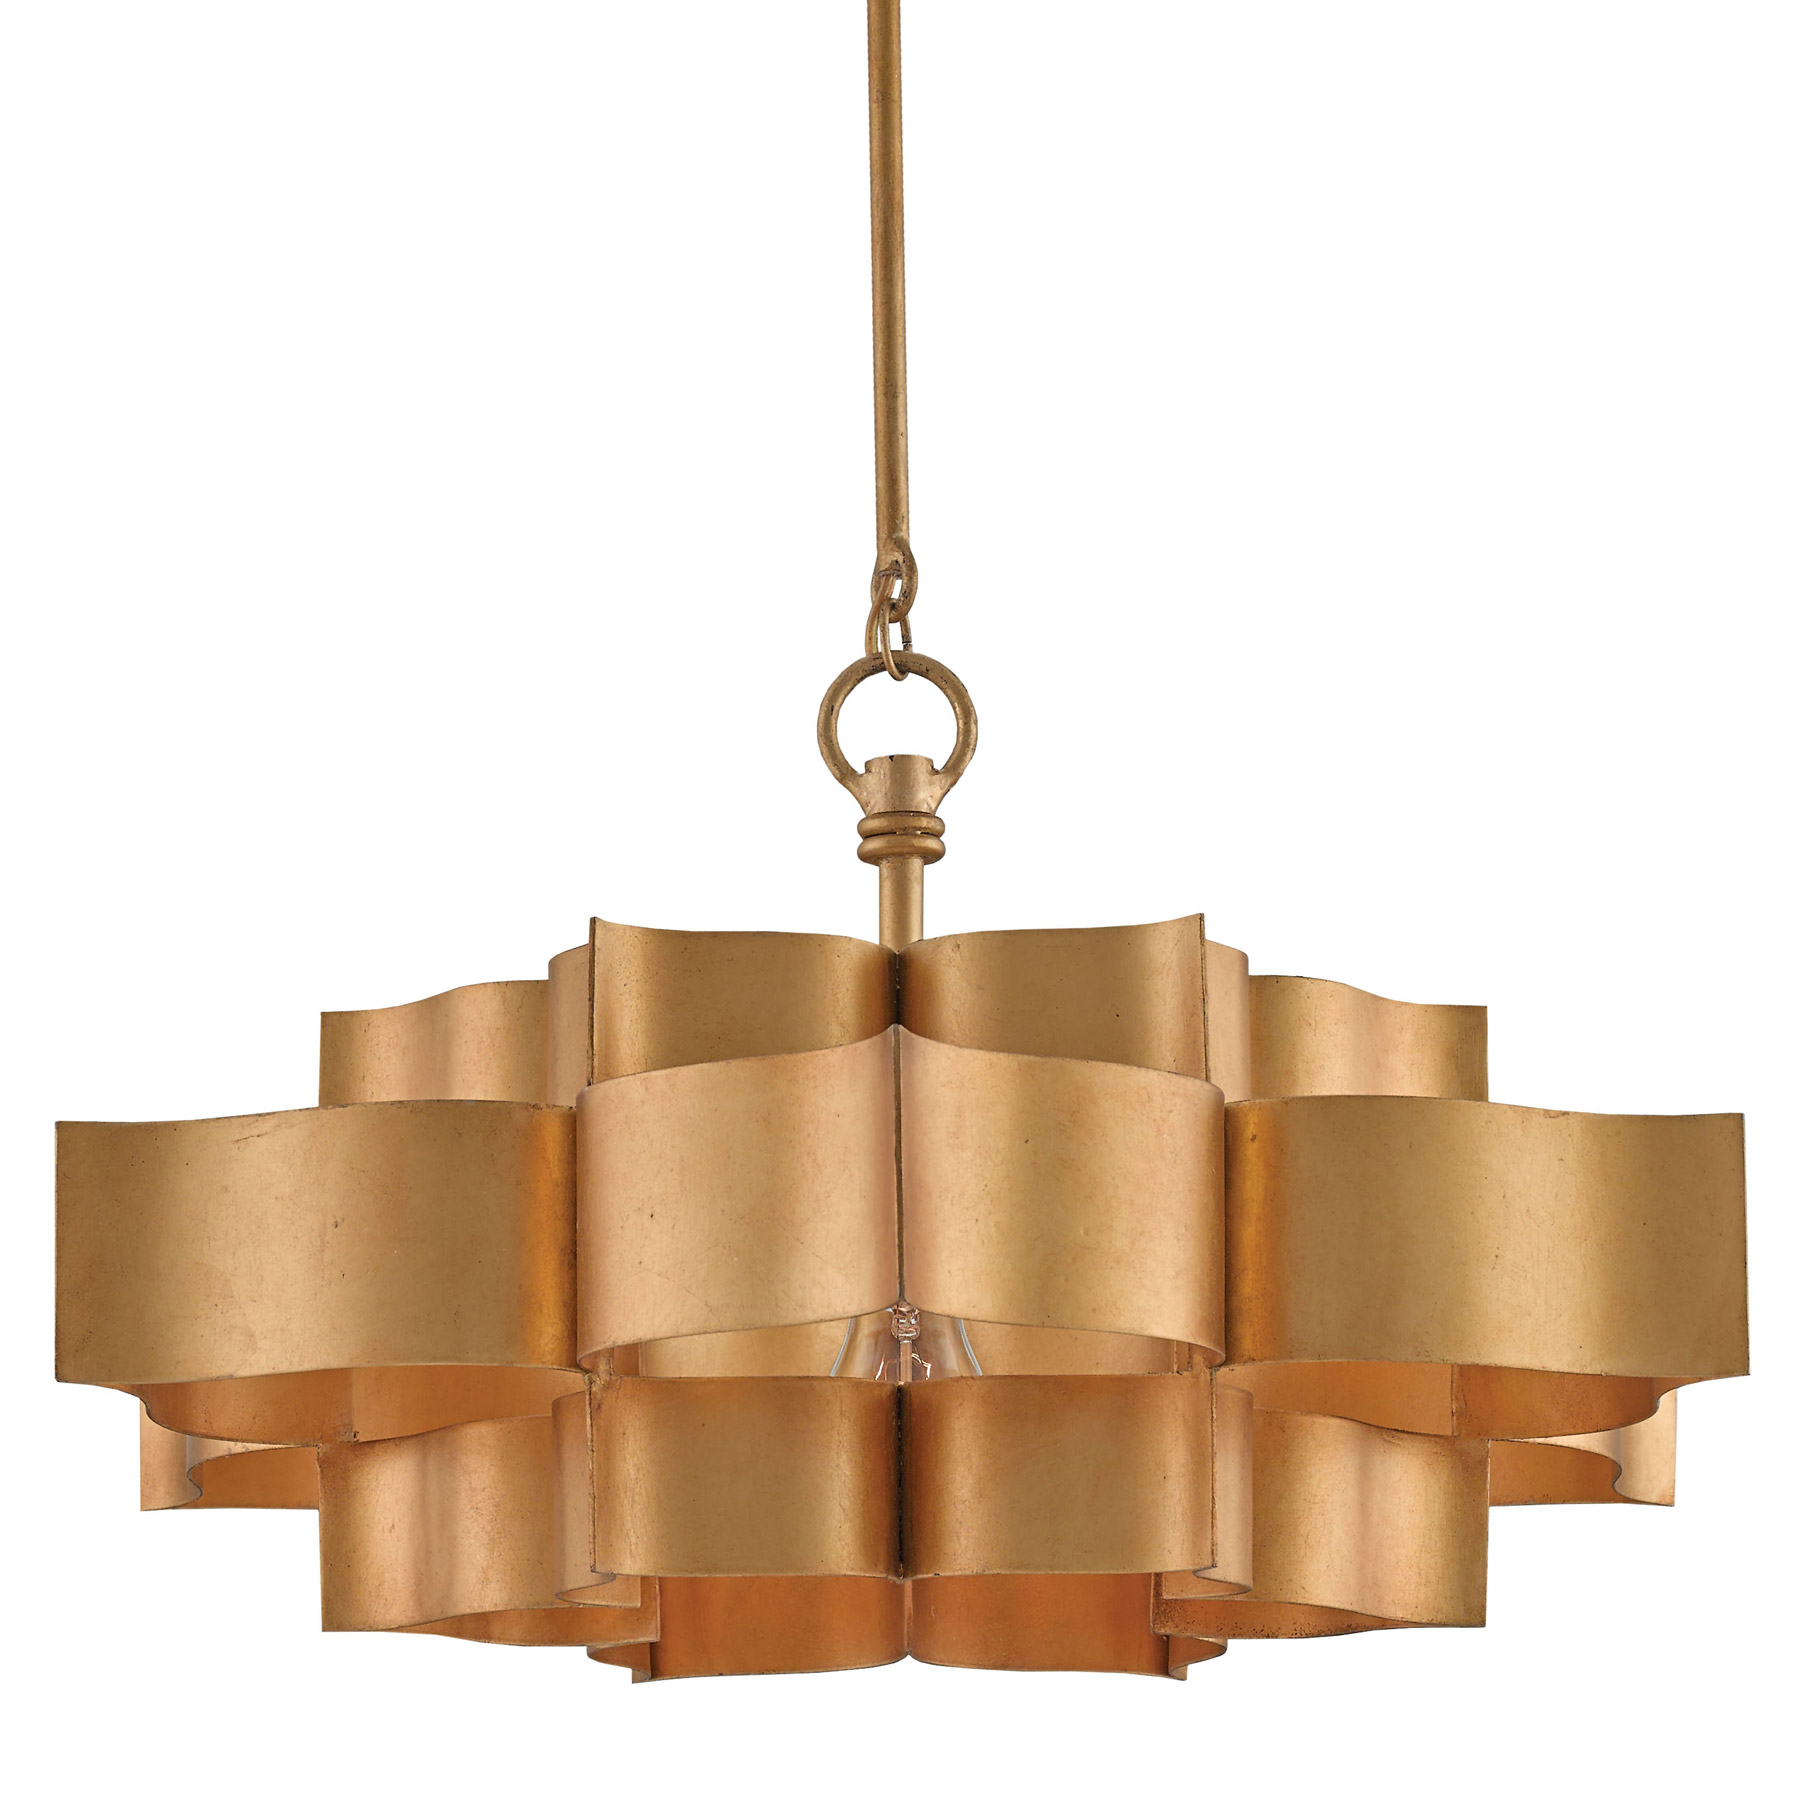 Currey And Company Lotus Chandelier: Currey And Company 9944 Grand Lotus Pendant / Semi-Flush